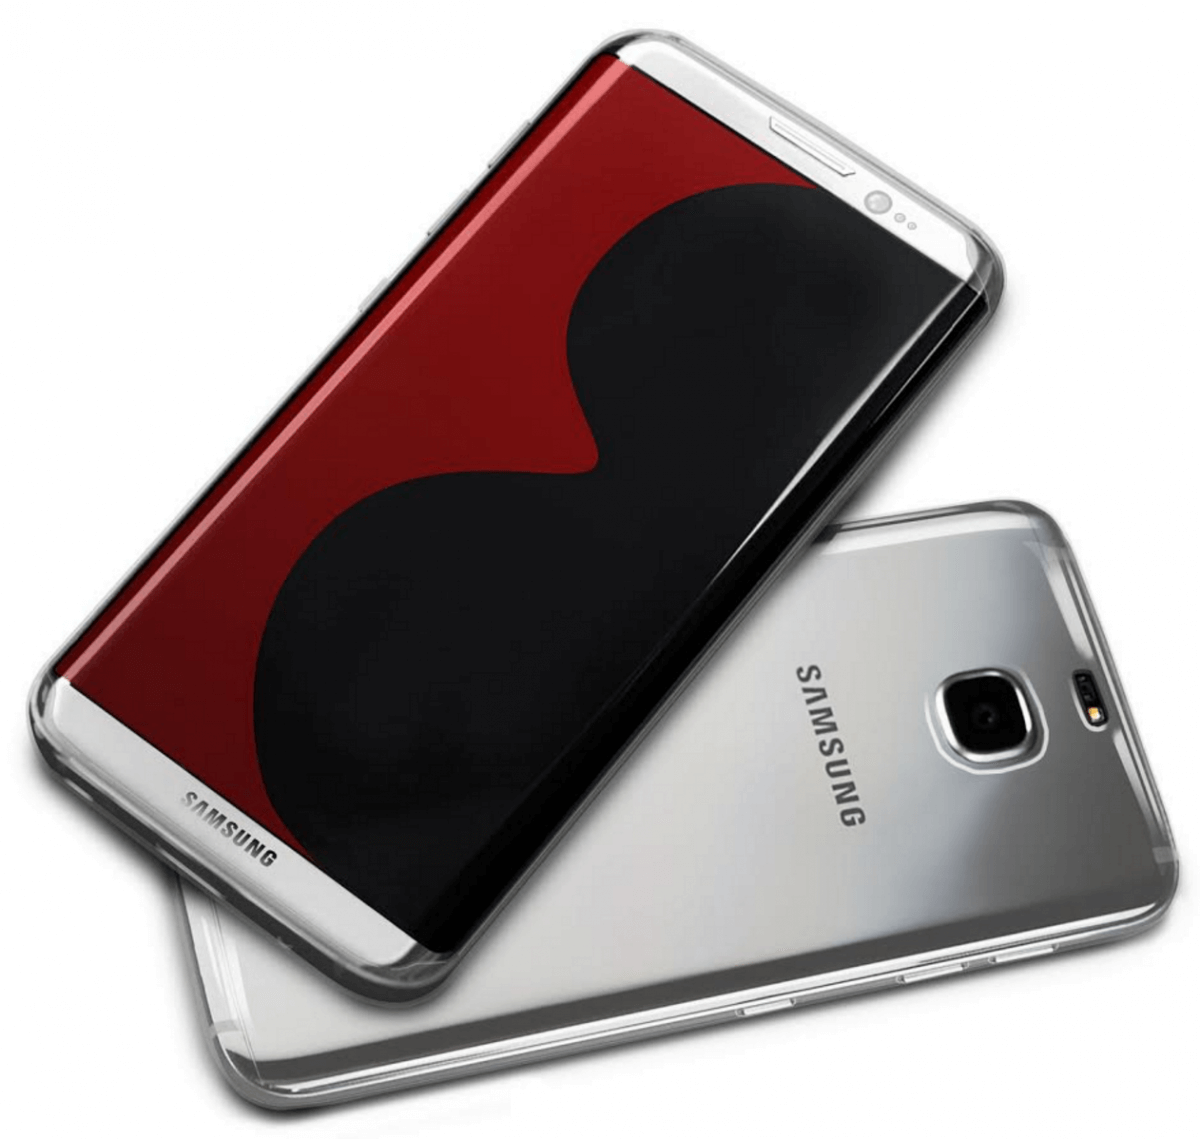 Samsung Galaxy S8 Edge Release Date, Price, Specifications, Features, Rumors, Leaks, News & Updates